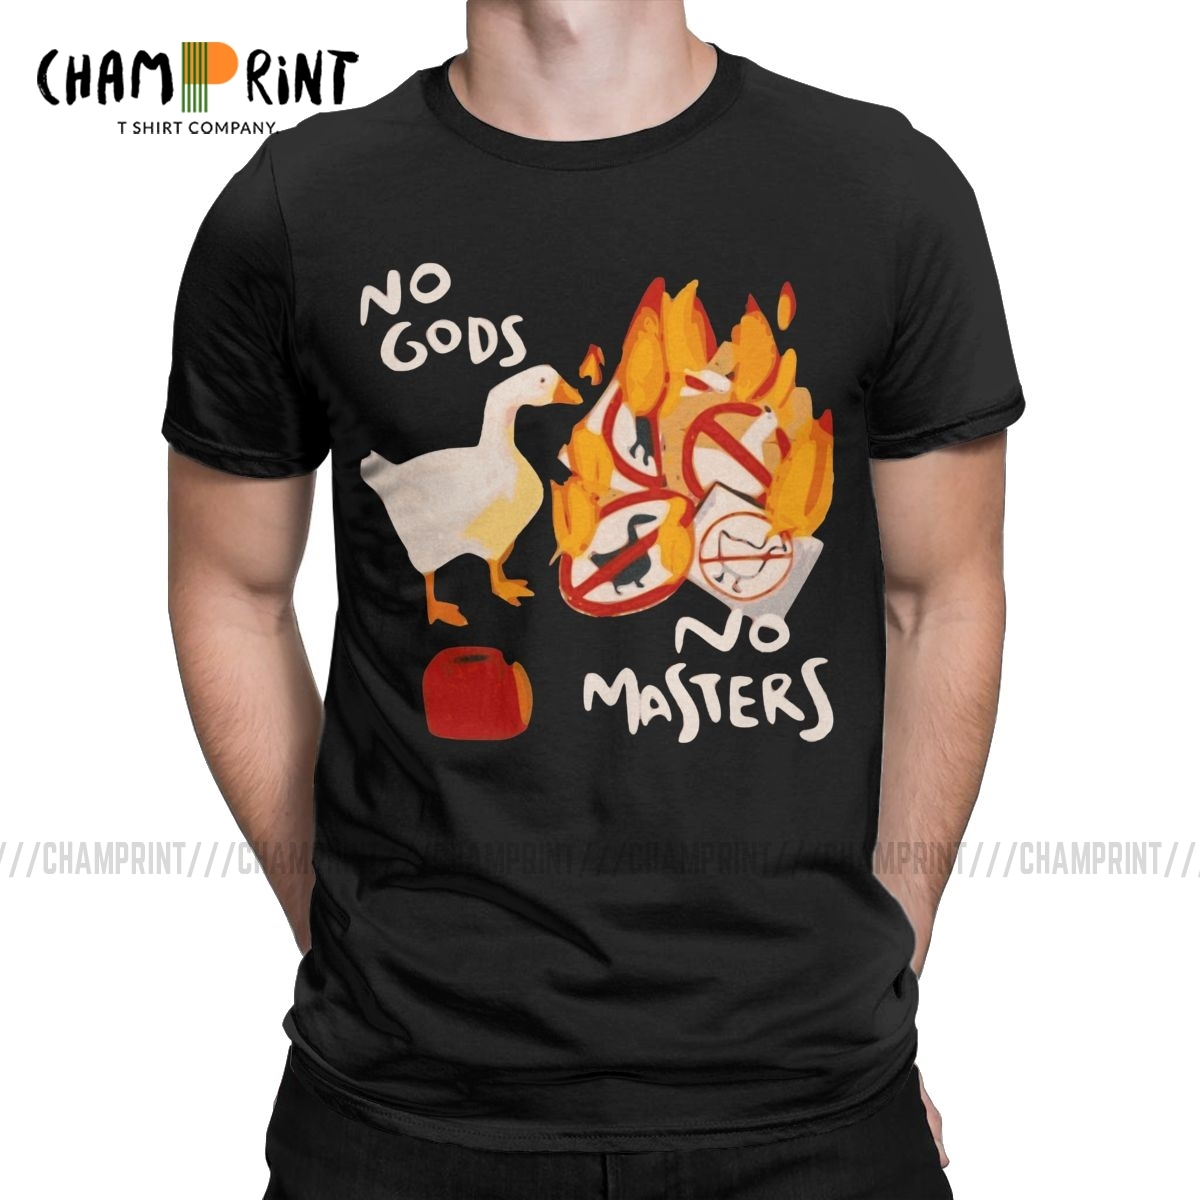 Men's T-Shirts Untitled Goose Game No God No Masters Meme Funny Tee Shirt Short Sleeve T Shirts Crew Neck Clothes 5XL